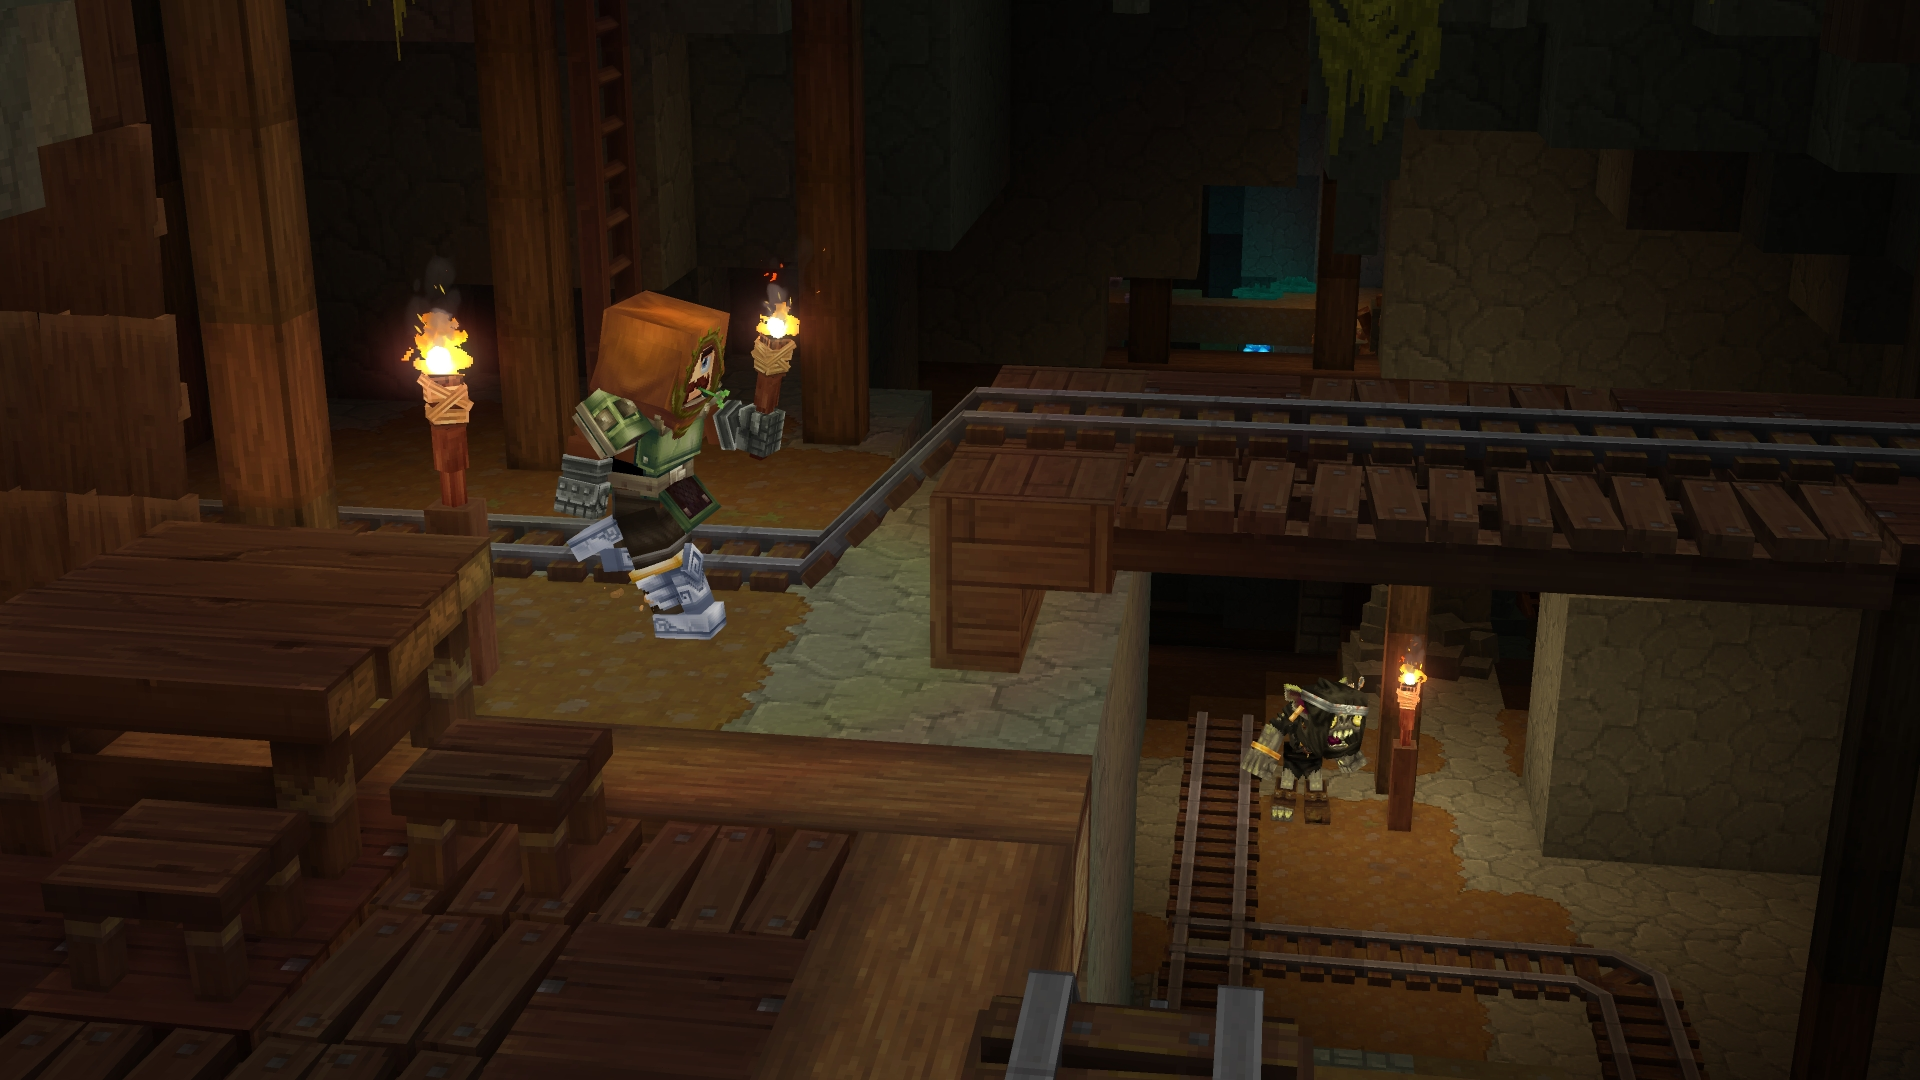 An in-development image of blocky RPG Hytale from July 2021.